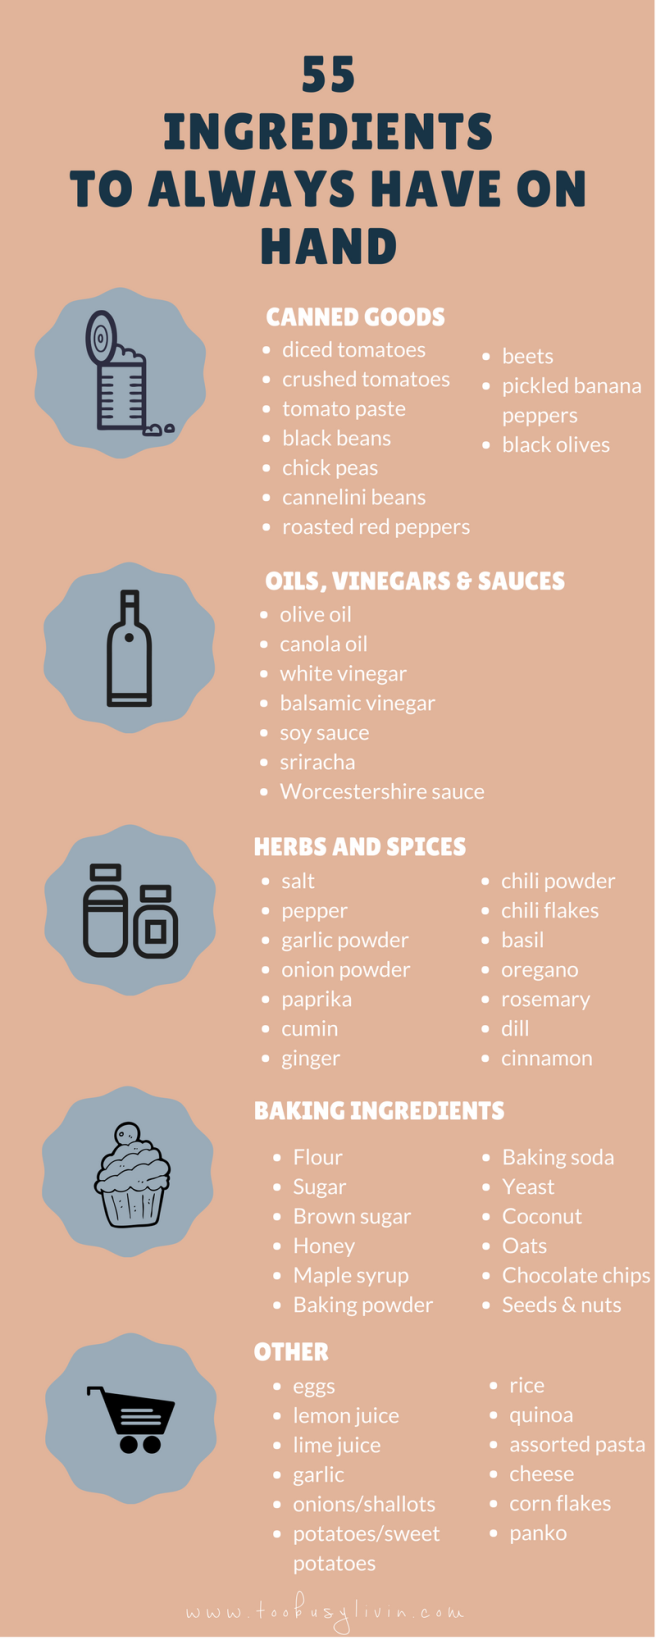 55 ingredients infographic